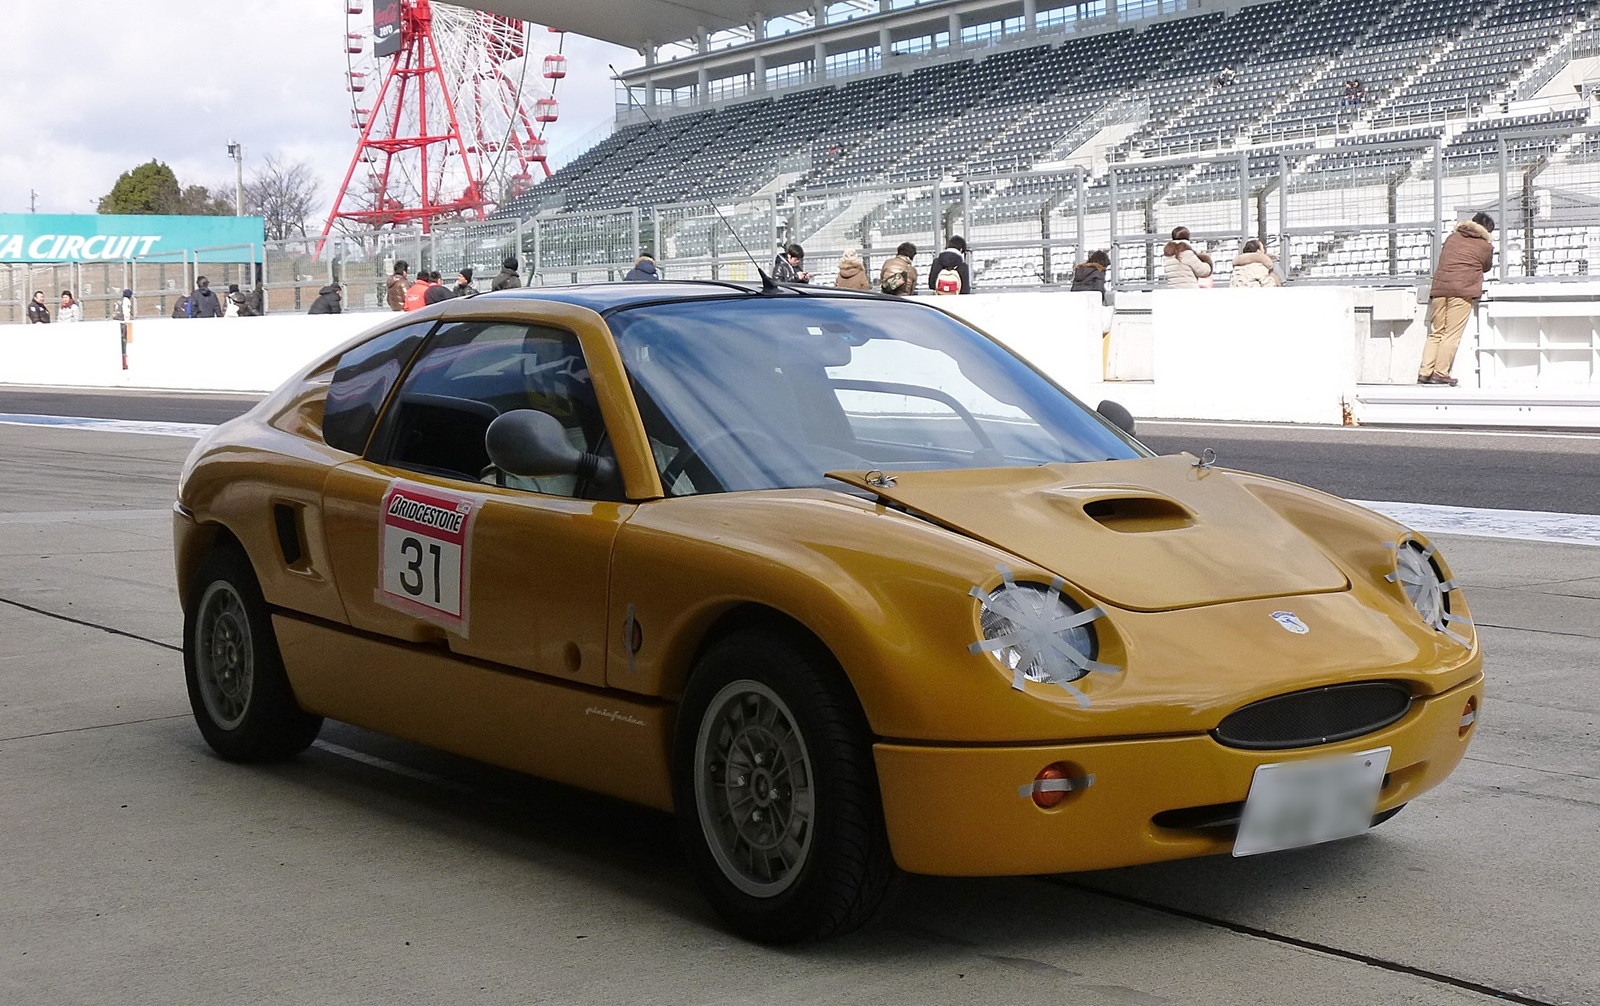 1996 Abarth Scorpione, based on the Autozam AZ-1.